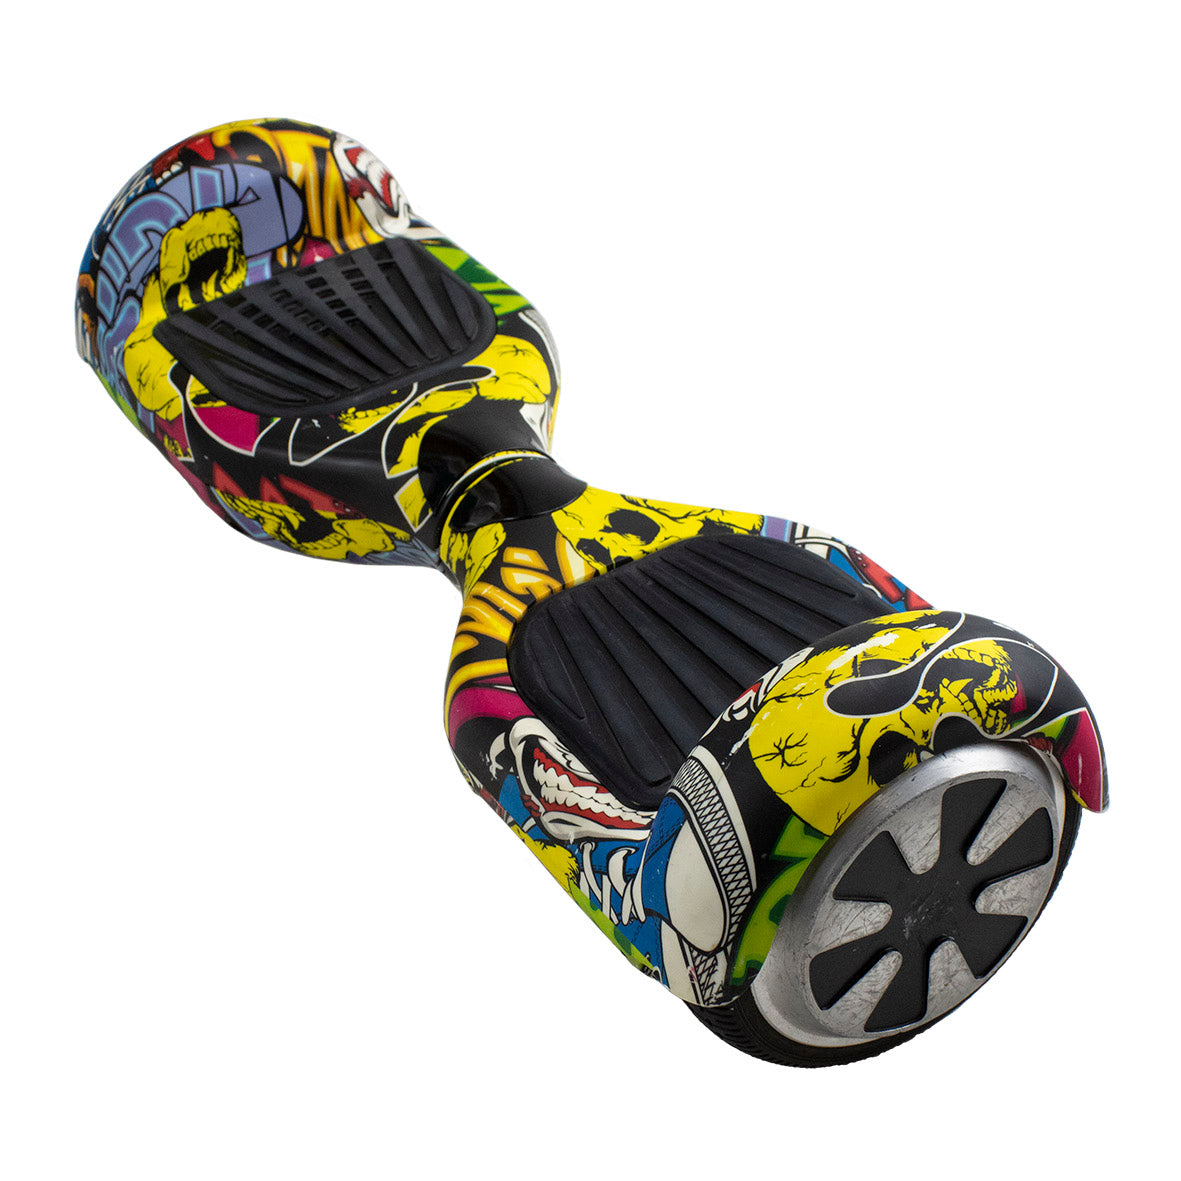 REFURBISHED 6.5″ COMIC HOVERBOARD + OFFROAD SUSPENSION HOVERKART BUNDLE